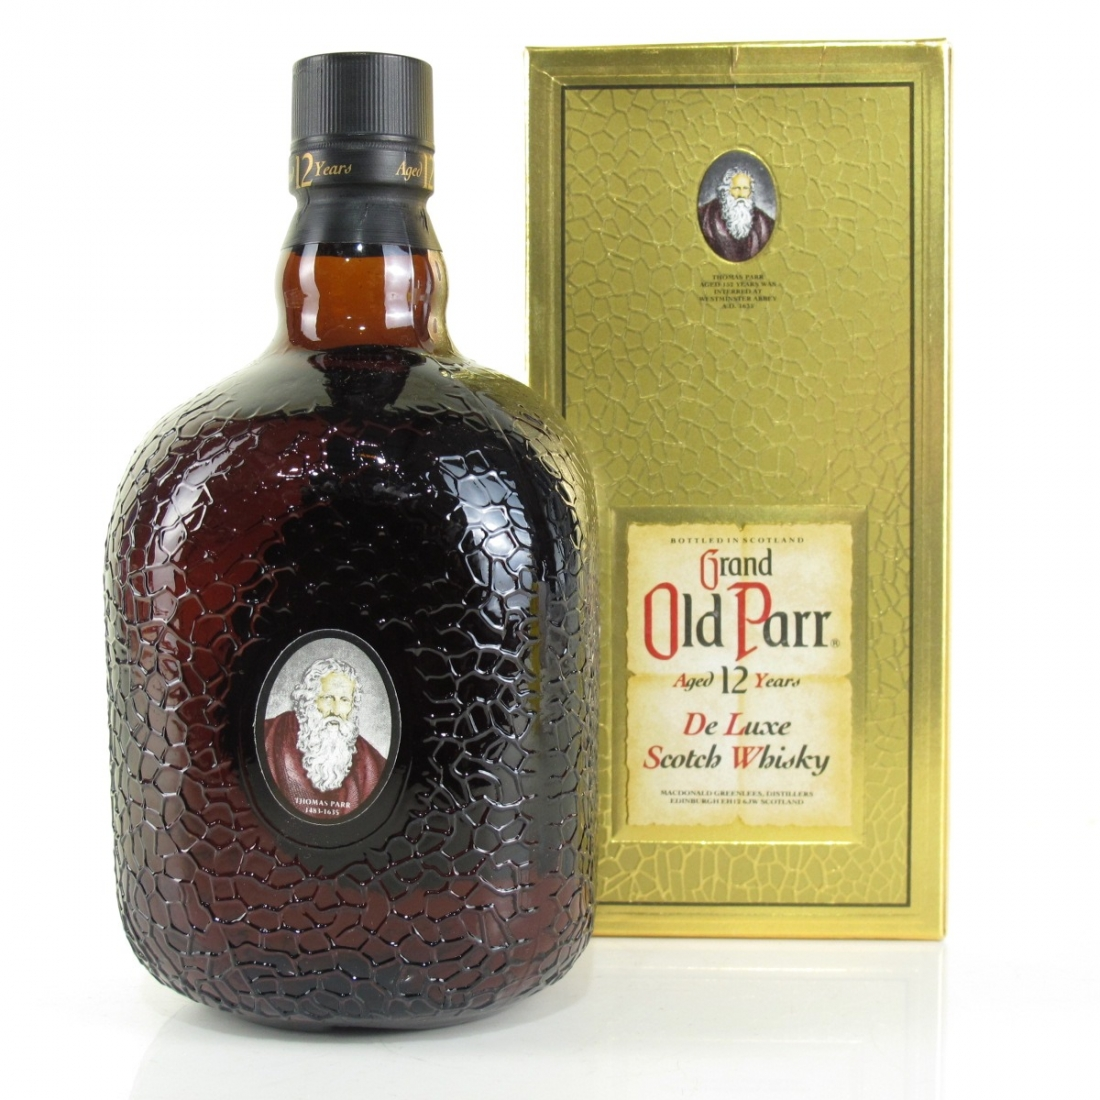 Grand Old Parr 12 Year Old 1 Litre